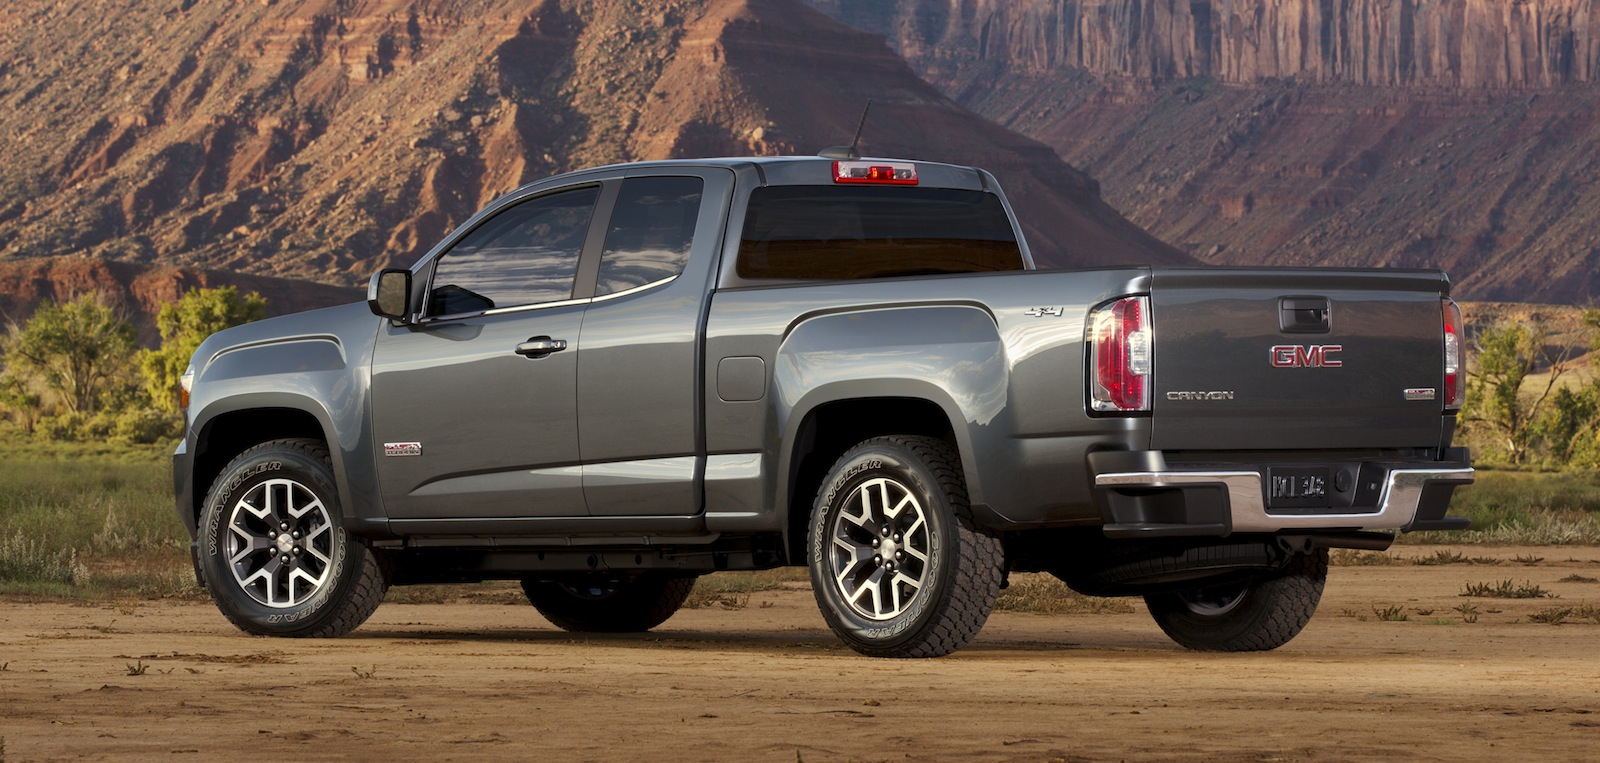 GMC Canyon : Colorado-based mid-size pick-up revealed - Photos (1 of 16)